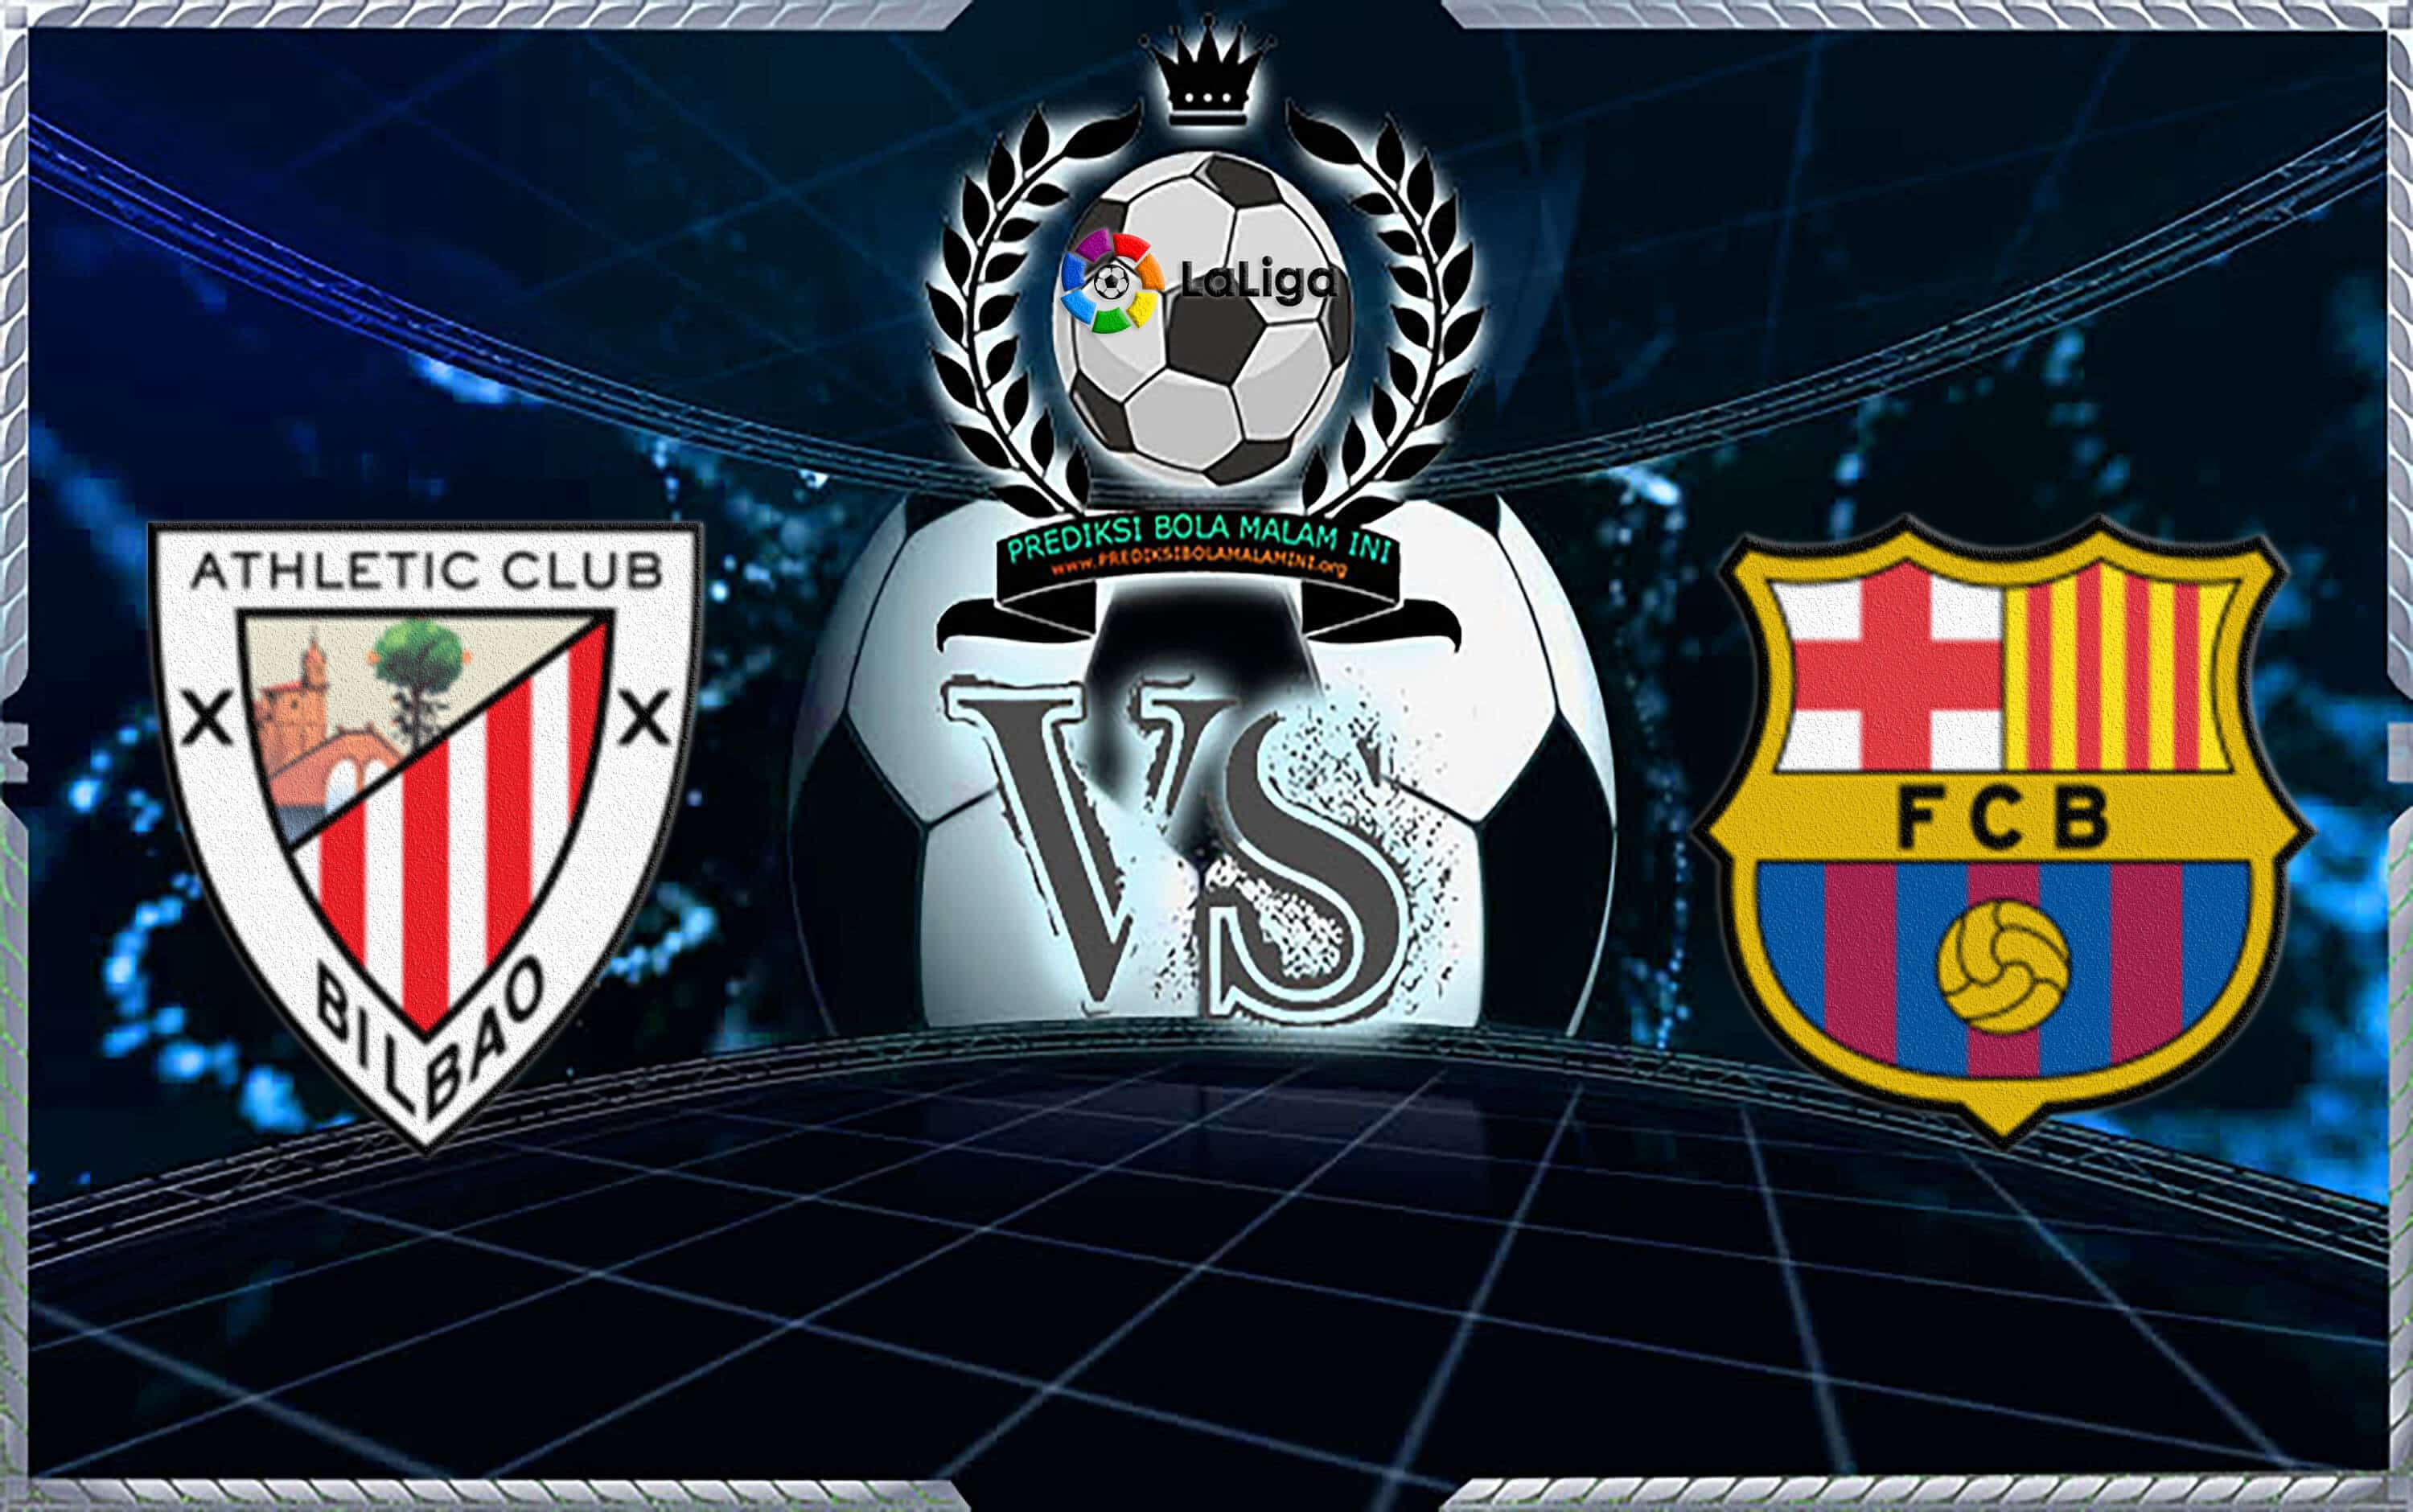 Prediksi Skor ATHLETIC CLUB Vs BARCELONA, Februari 2019